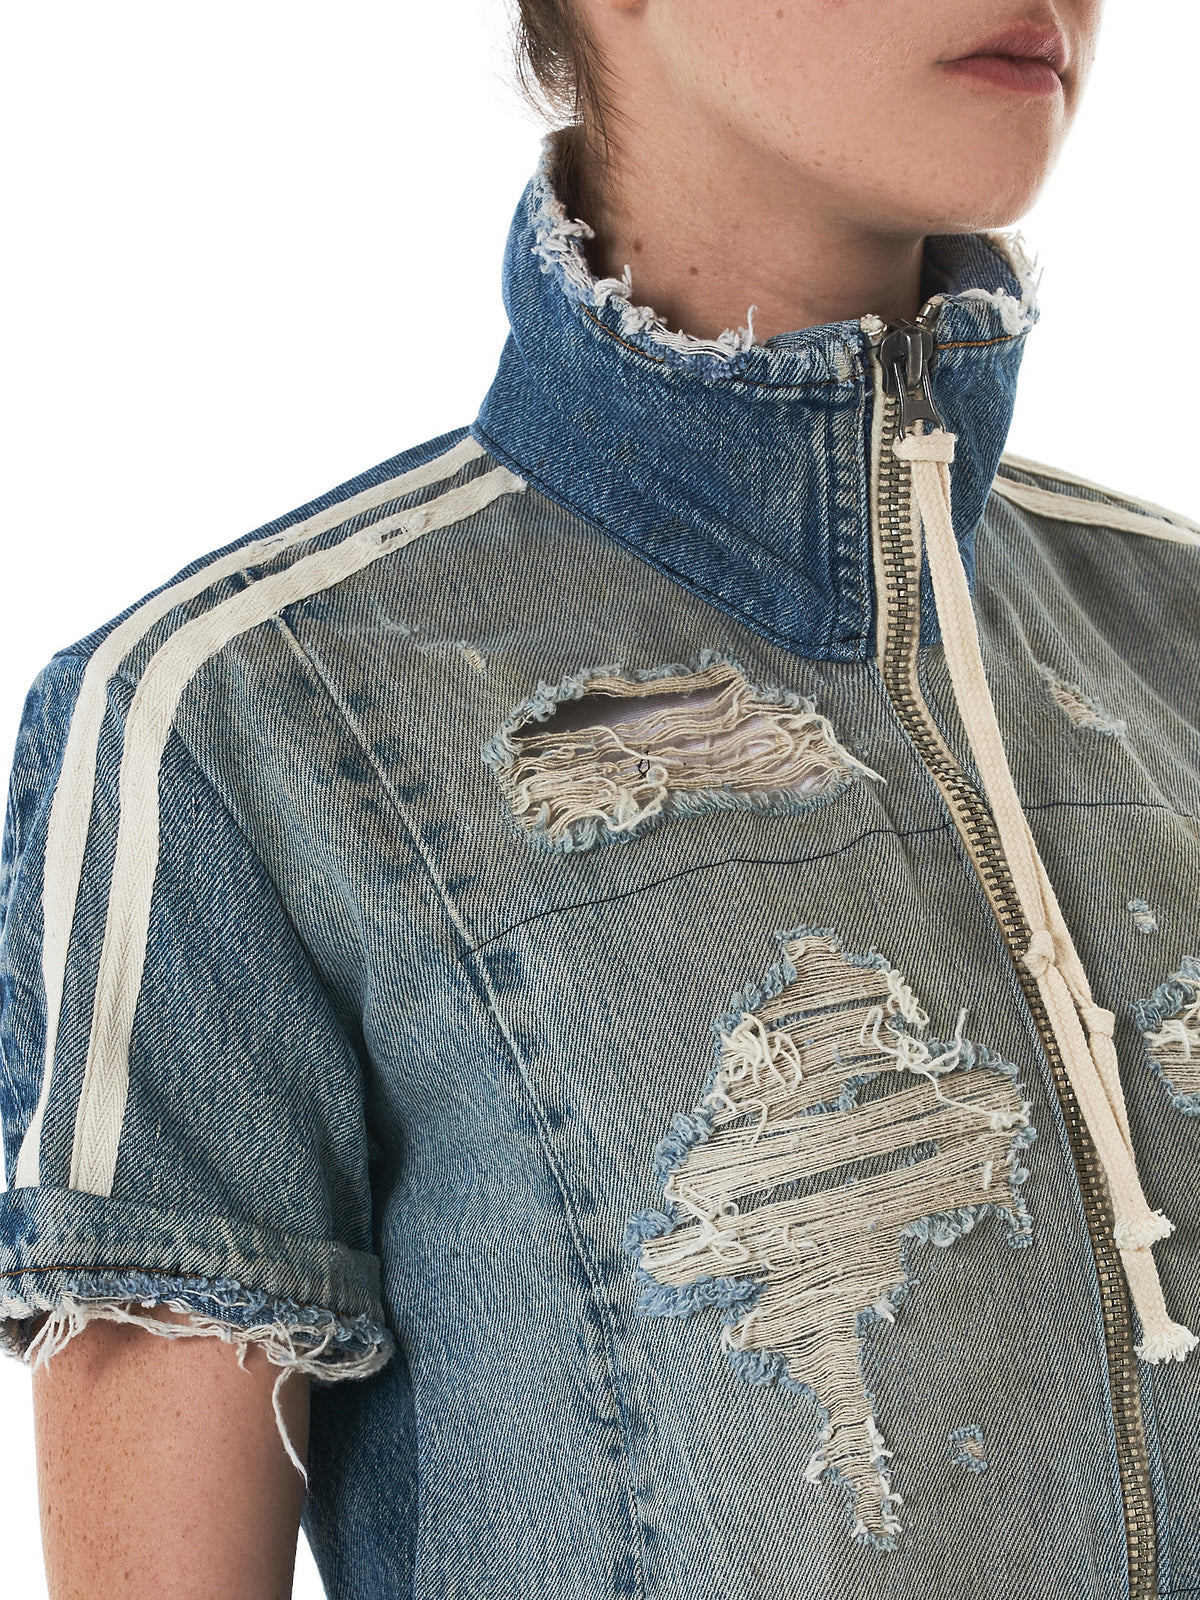 Greg Lauren Denim Track Shirt - Hlorenzo Detail 2